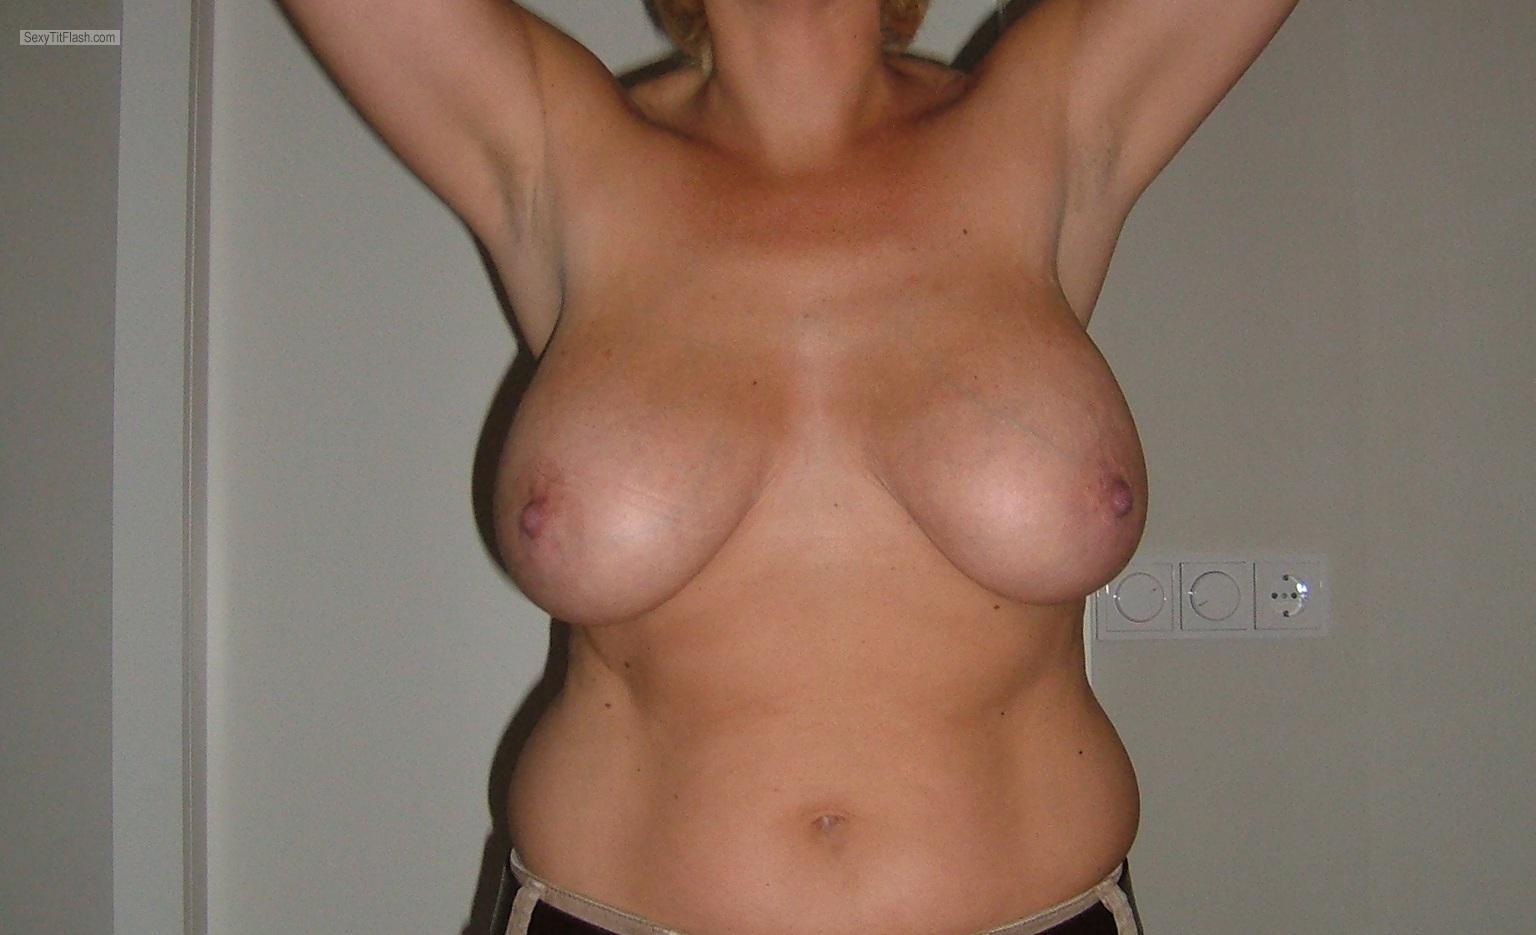 Tit Flash: My Tanlined Very Big Tits - Topless Try-out from Netherlands